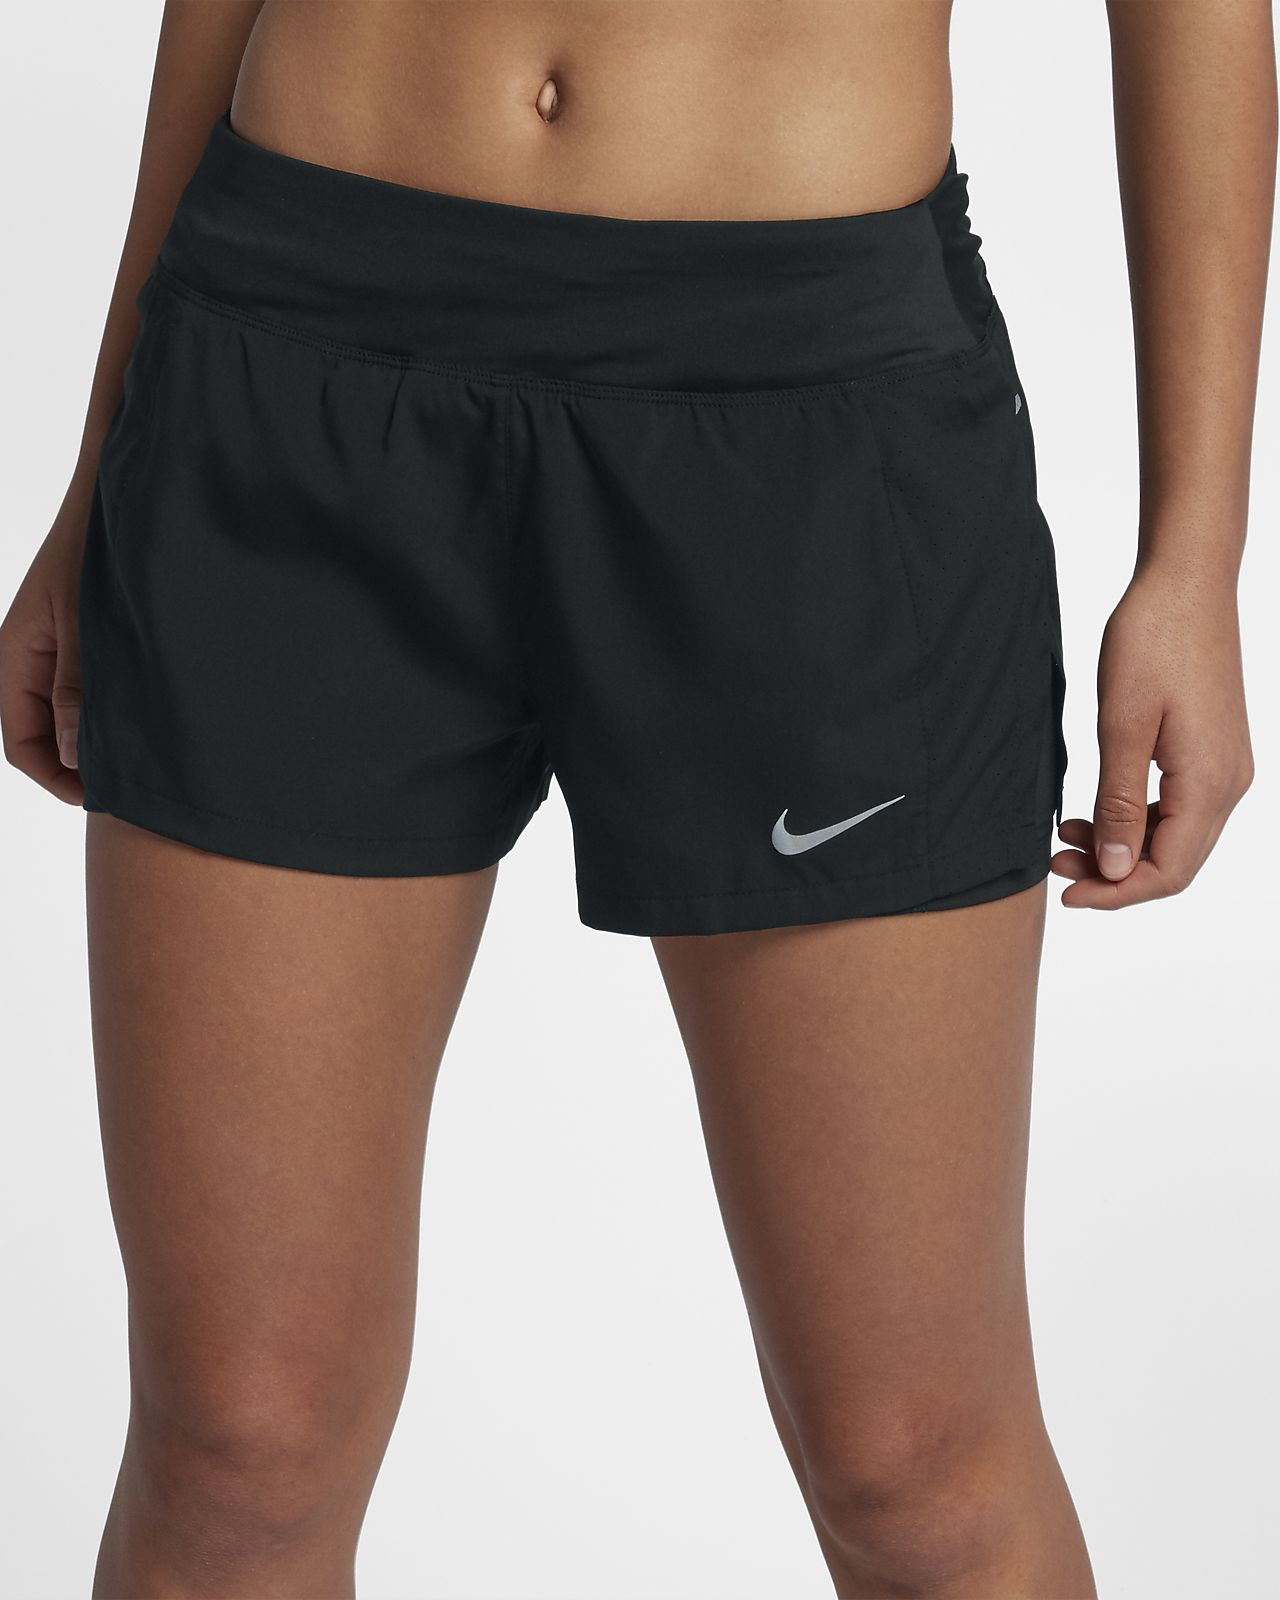 enorme sconto 5aed4 63817 Shorts da running 2-in-1 Nike Eclipse - Donna